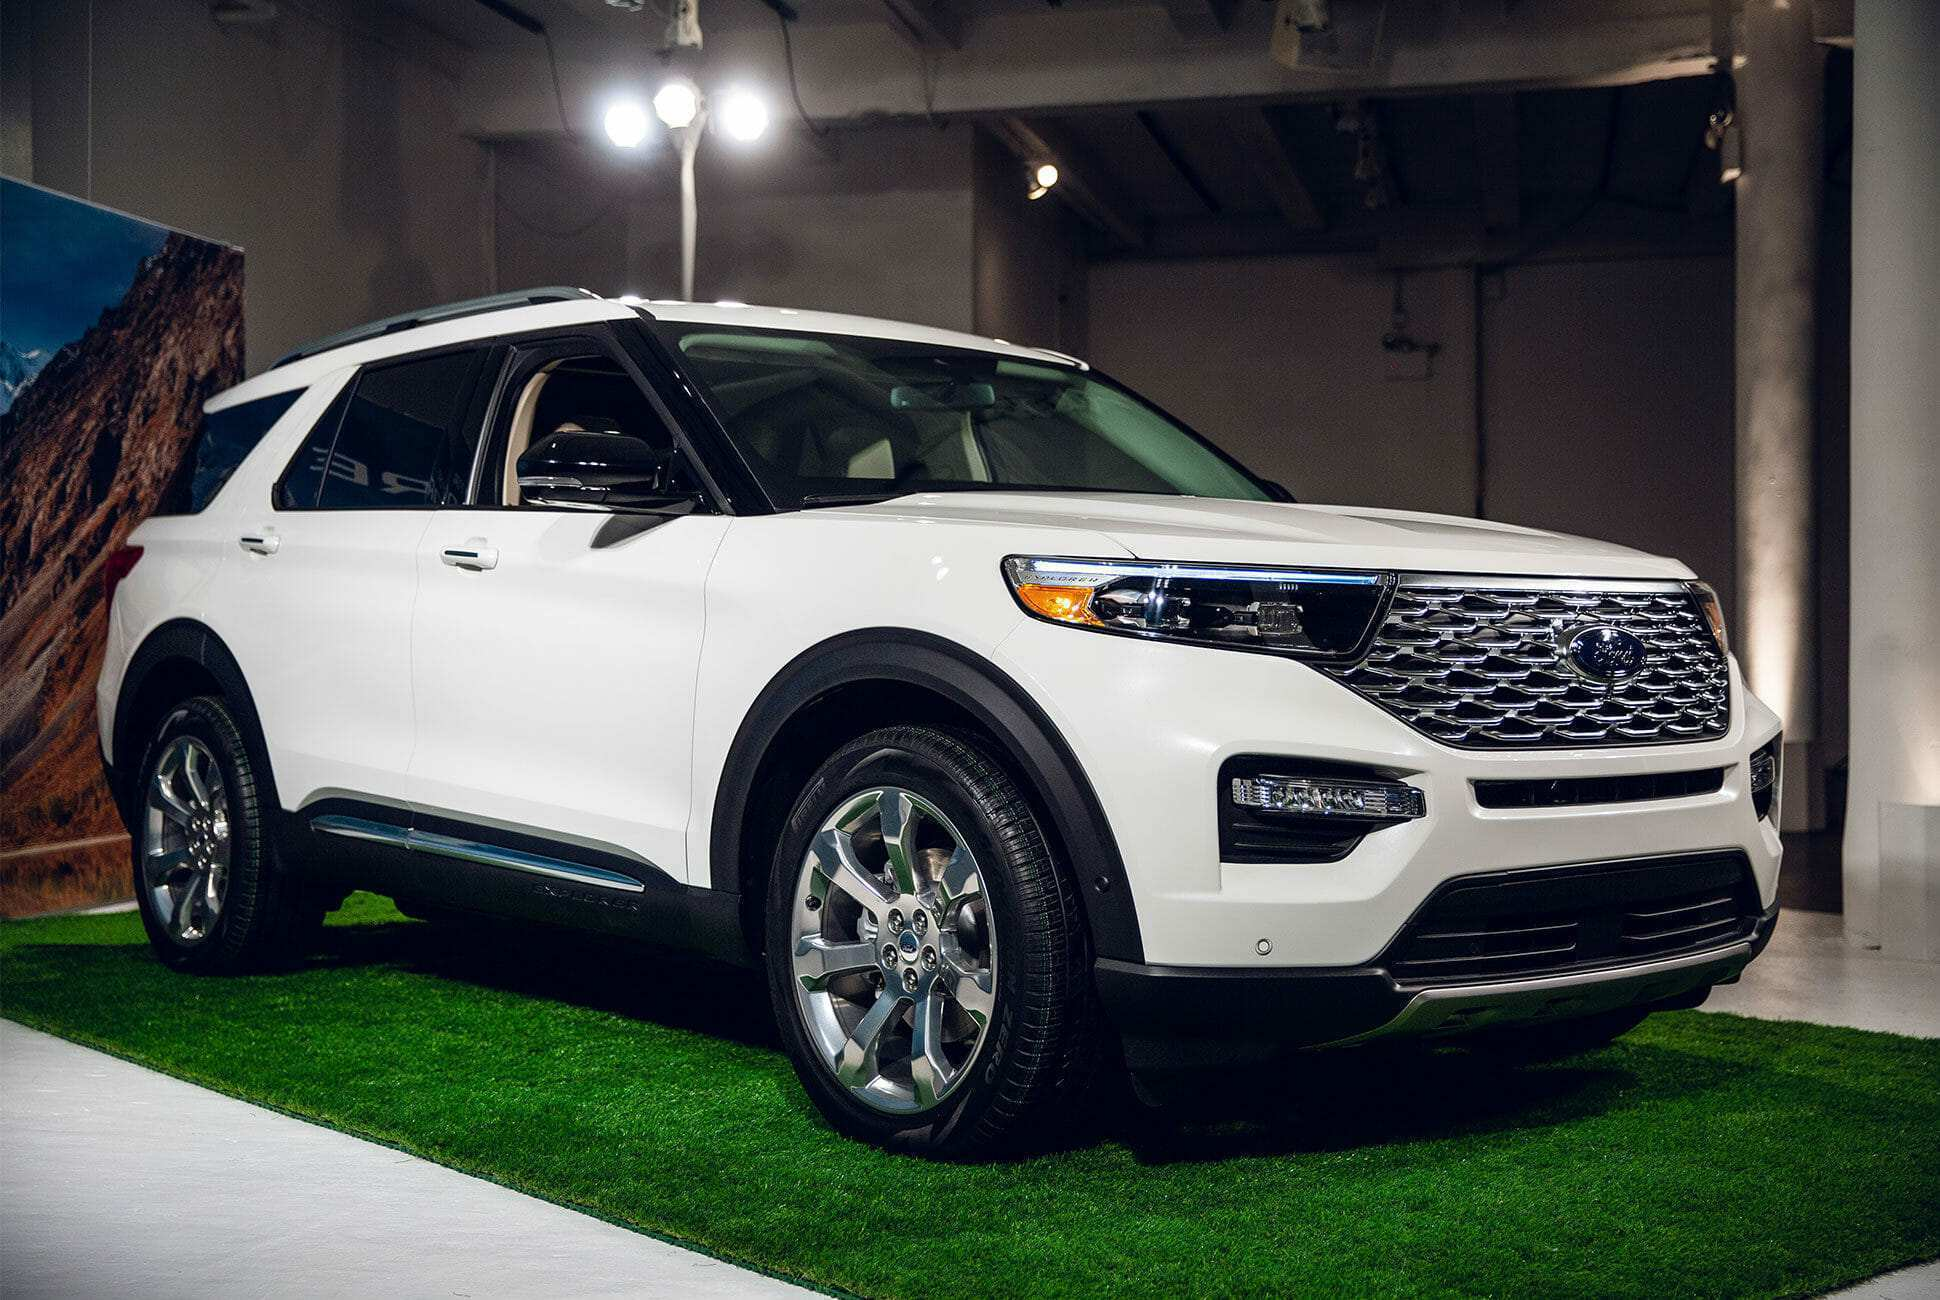 13 Great 2020 The Ford Explorer Review with 2020 The Ford Explorer